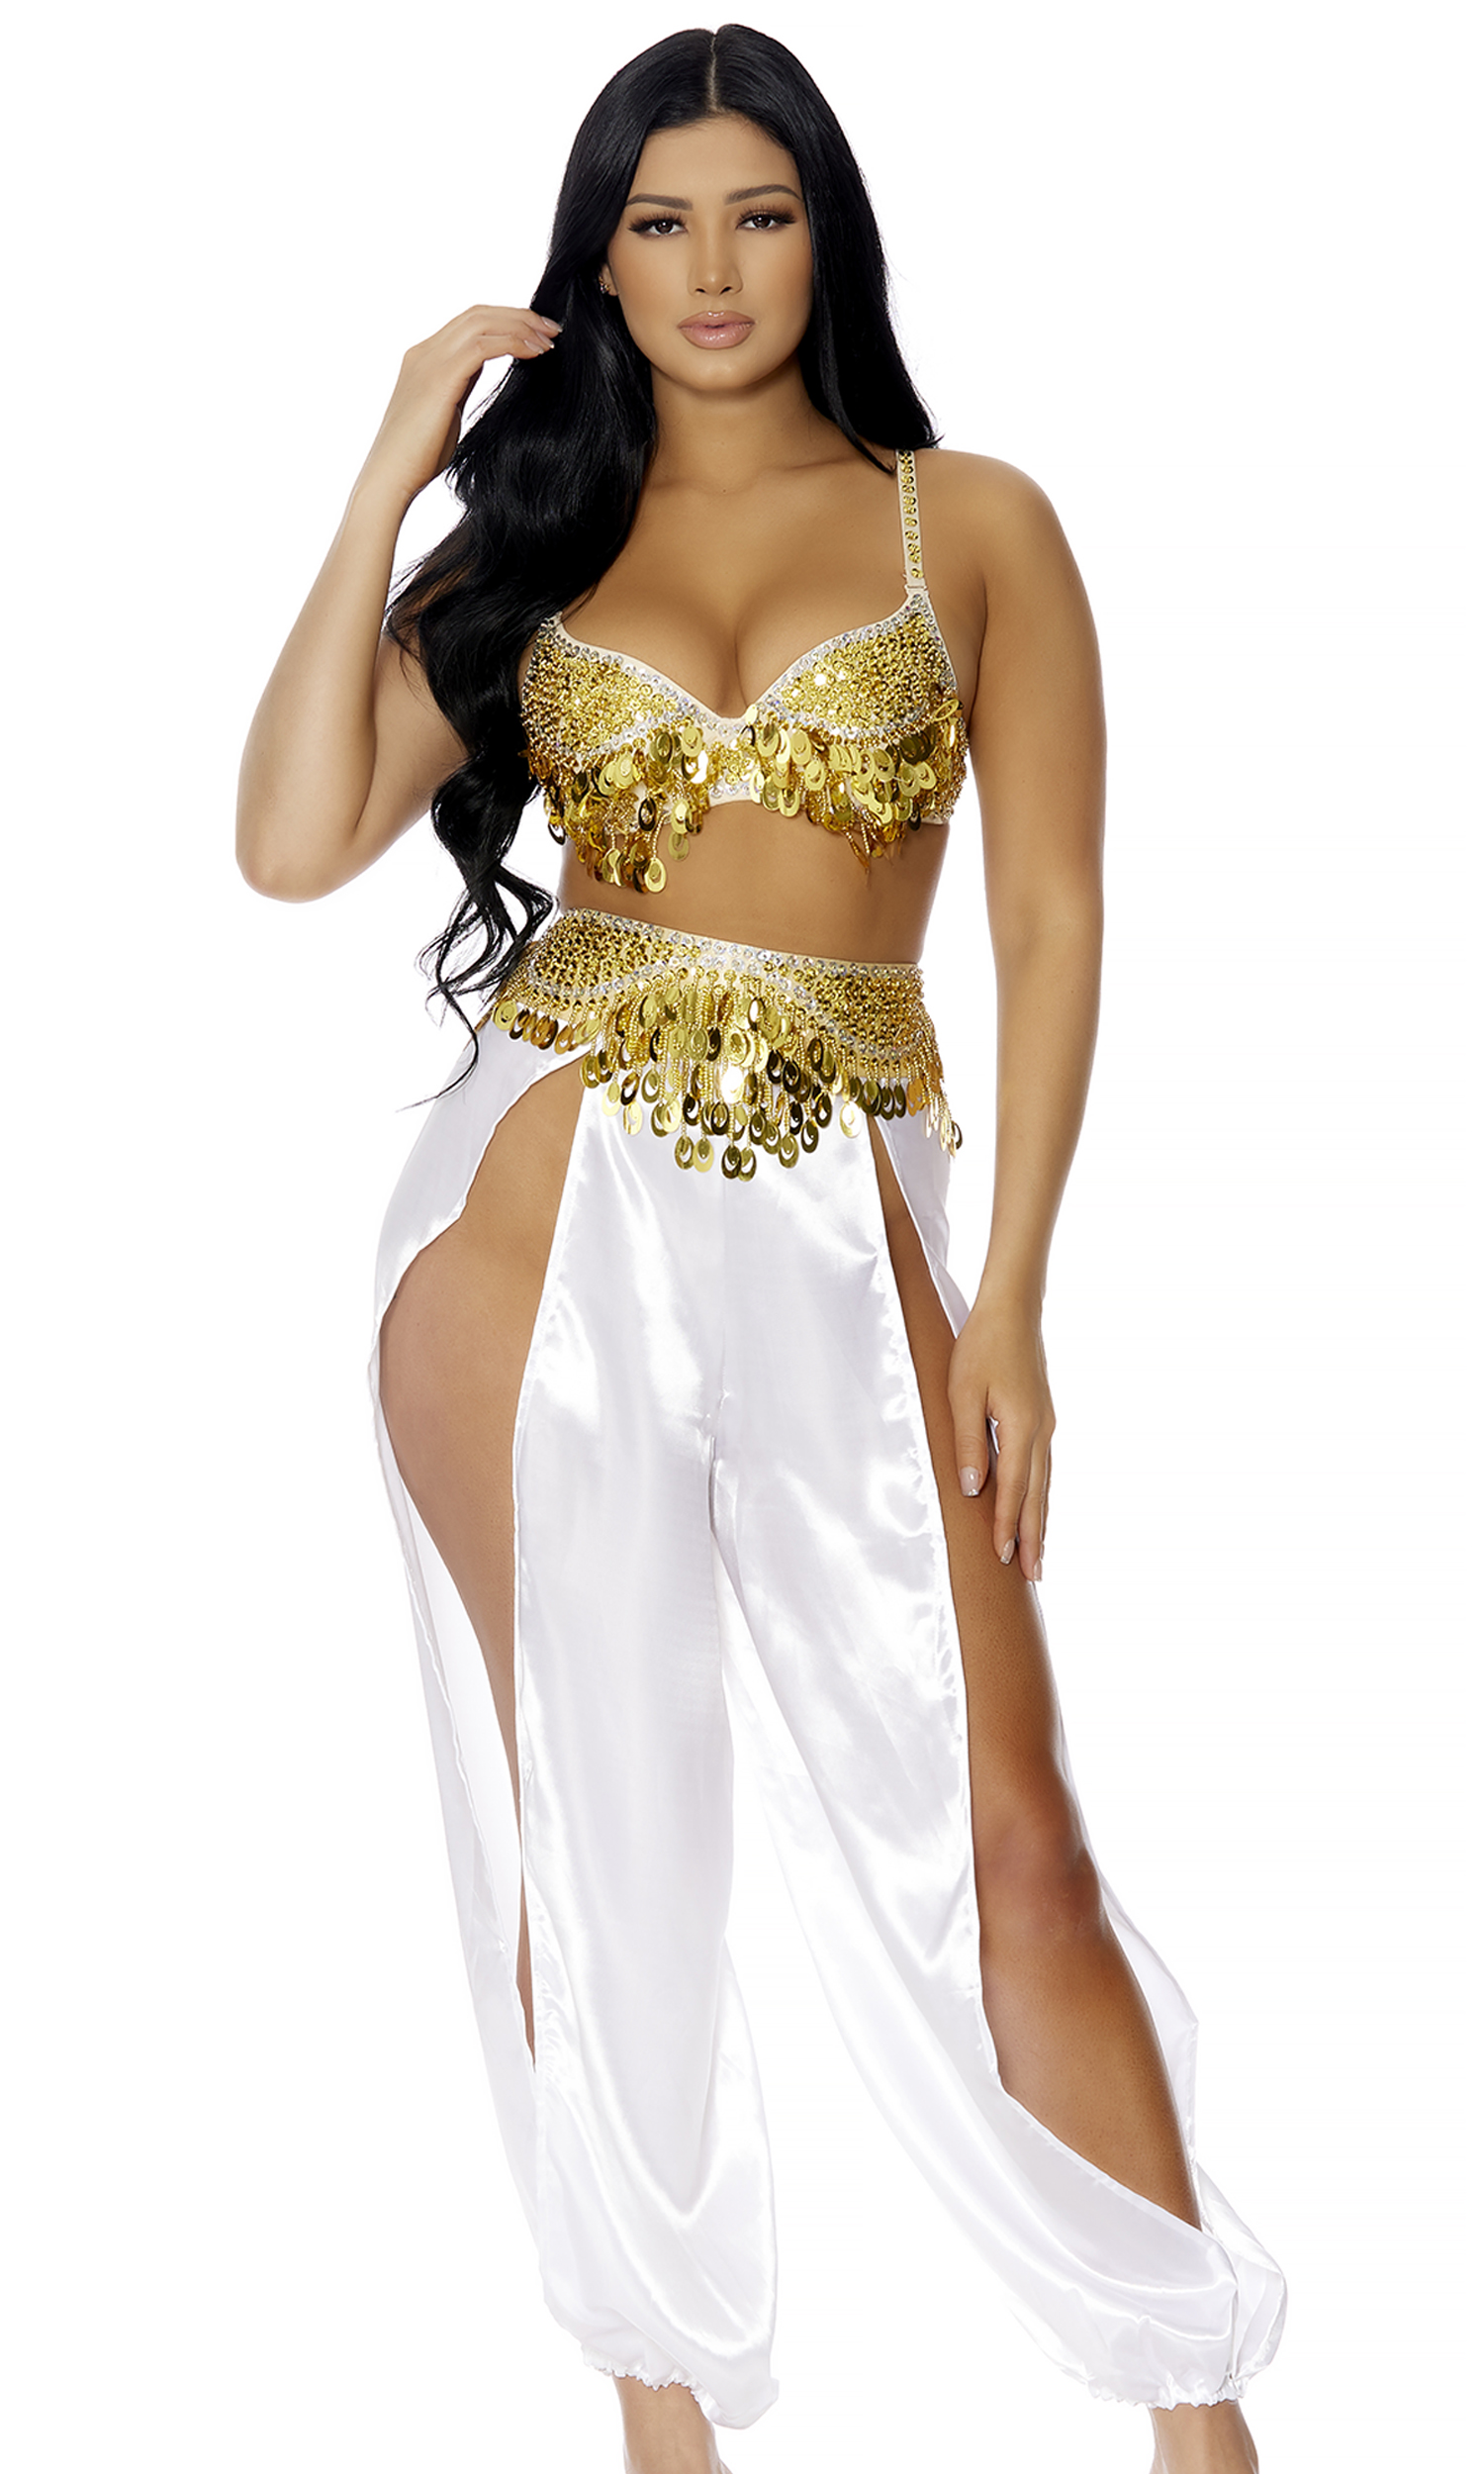 Sexy exotic costumes, exotic dancer costume, sexy dance wear outfits